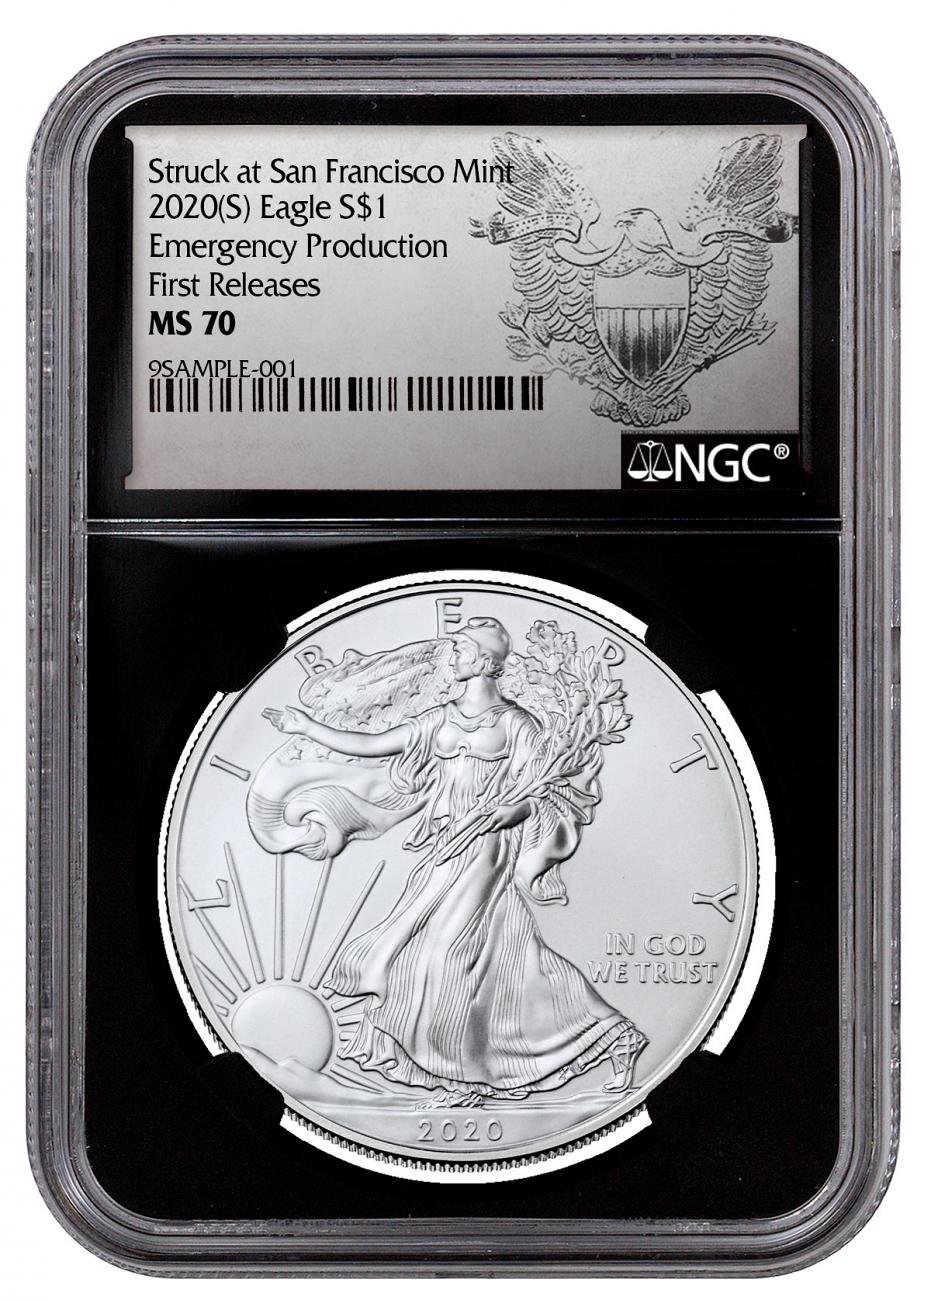 2020-(S) 1 oz American Silver Eagle Struck at San Francisco Mint Emergency Production NGC MS70 FR Black Core Holder Exclusive Heraldic Eagle Label